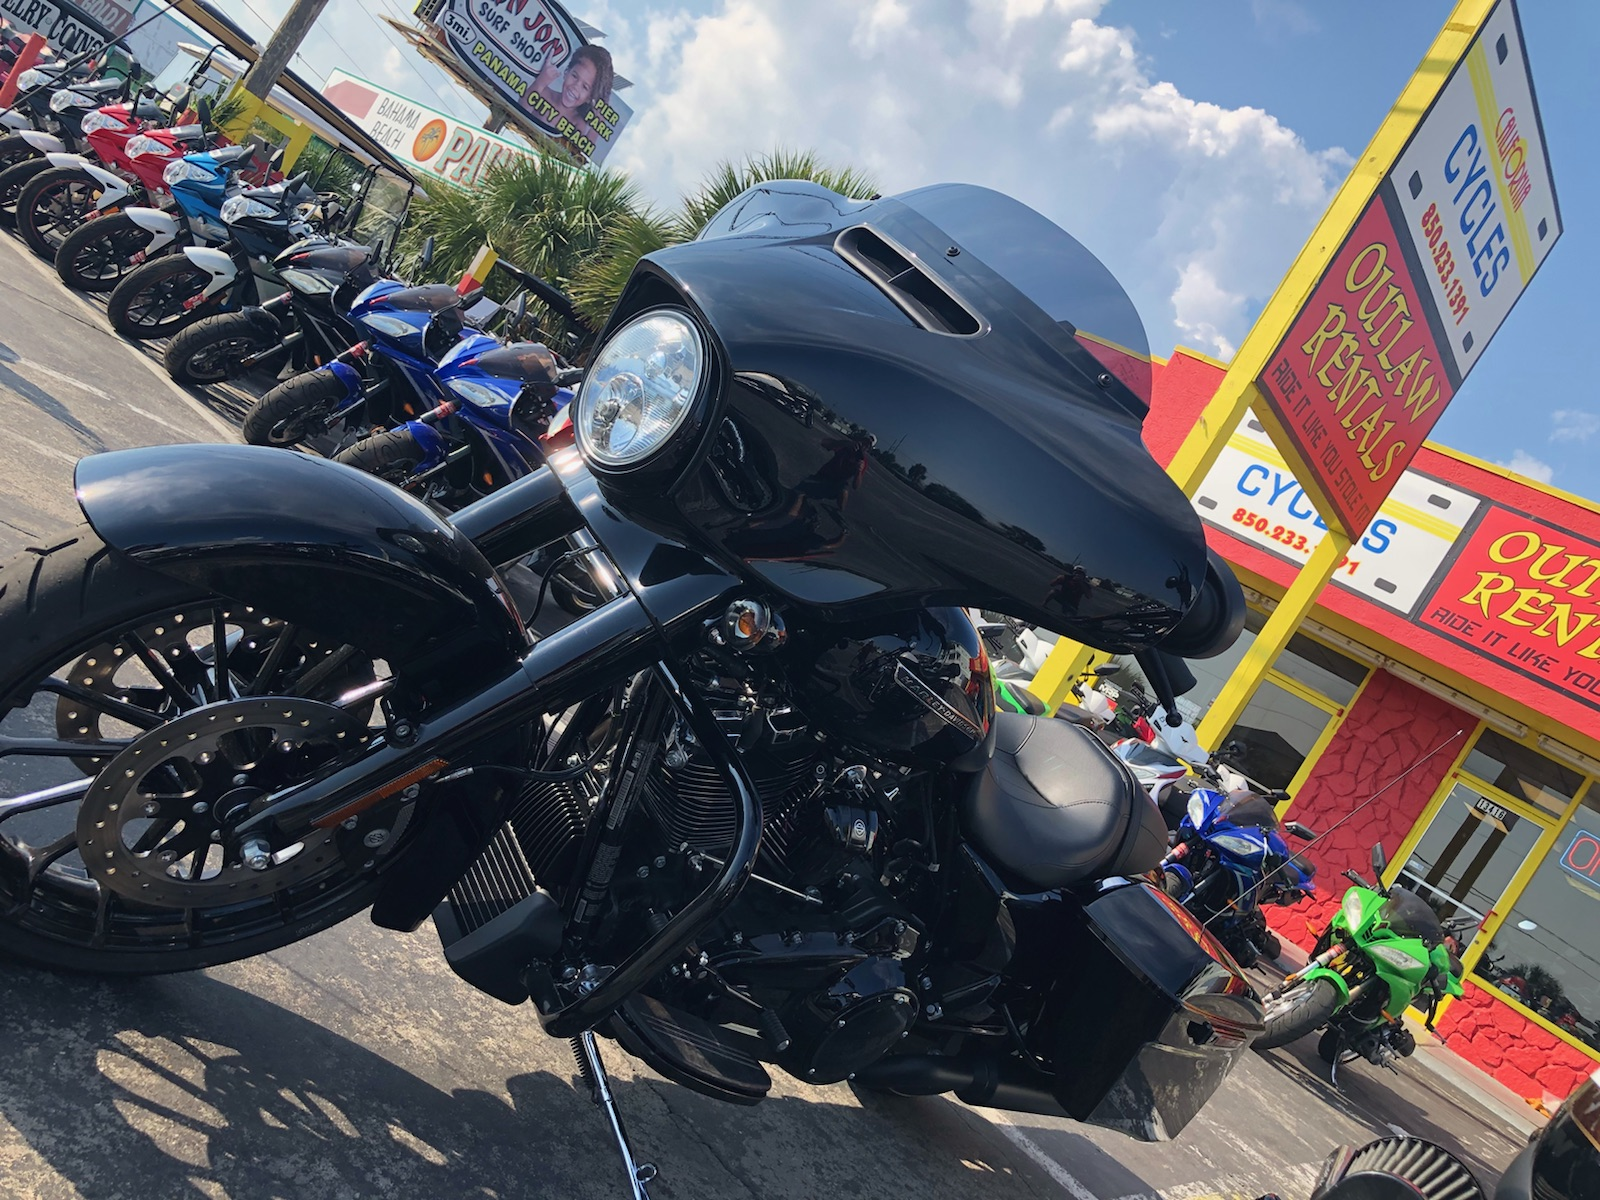 California Cycles - Outlaw Rentals - Motorcycle Rentals in Panama City Beach